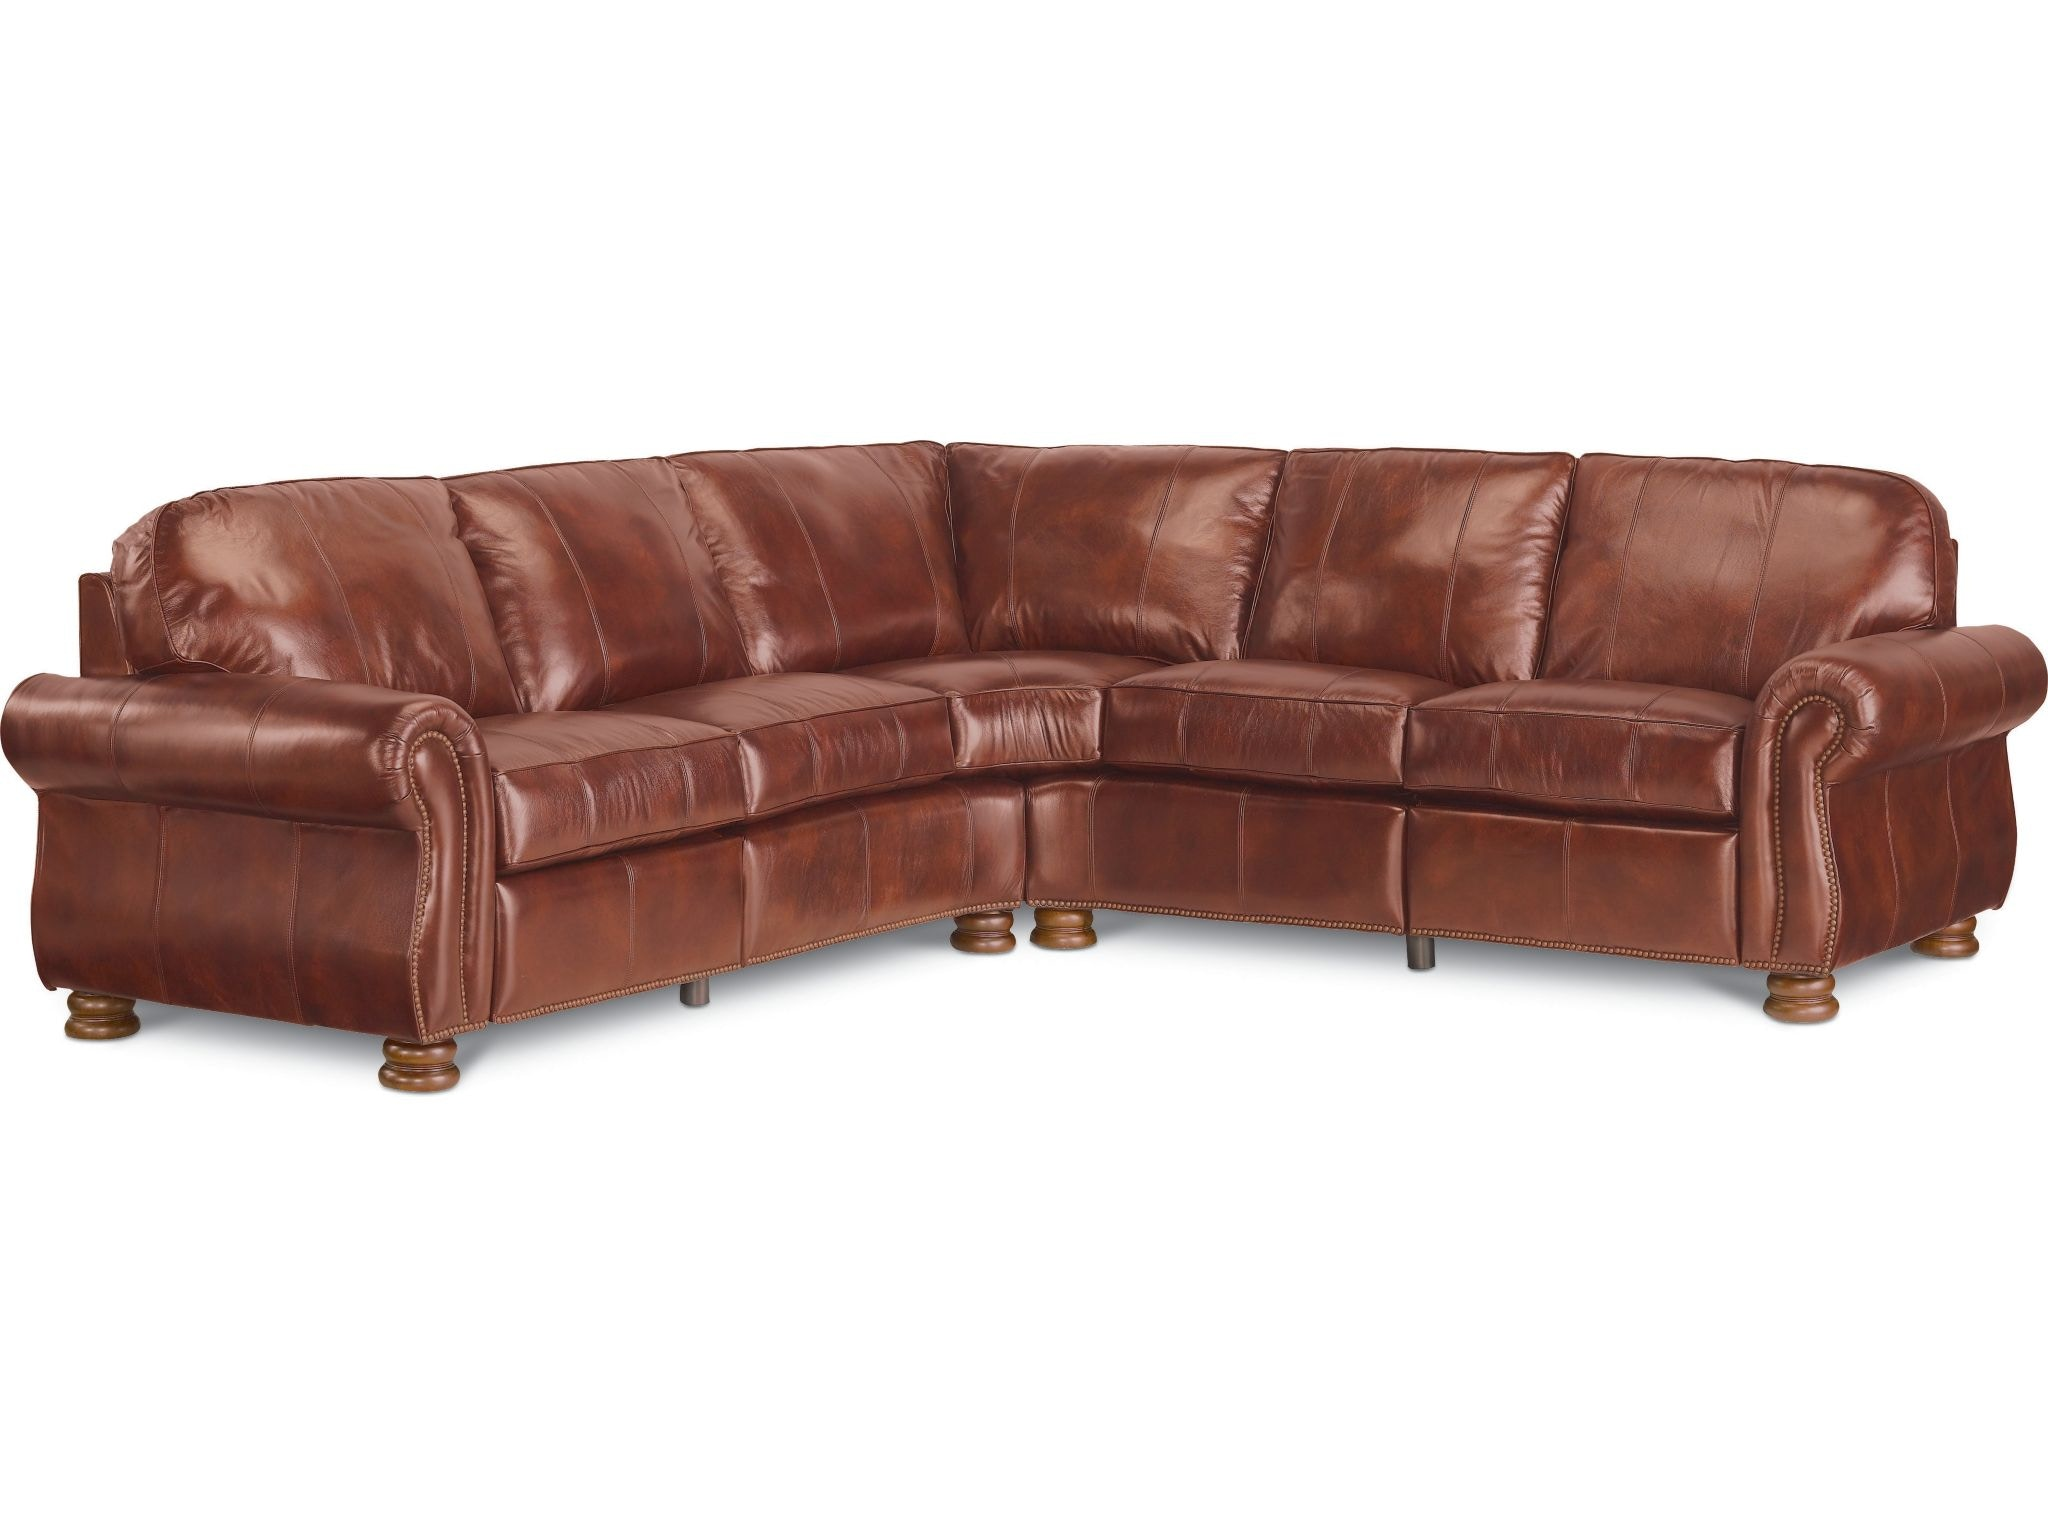 thomasville living room benjamin motion l a sofa with half wedge rh thomasvillenj com